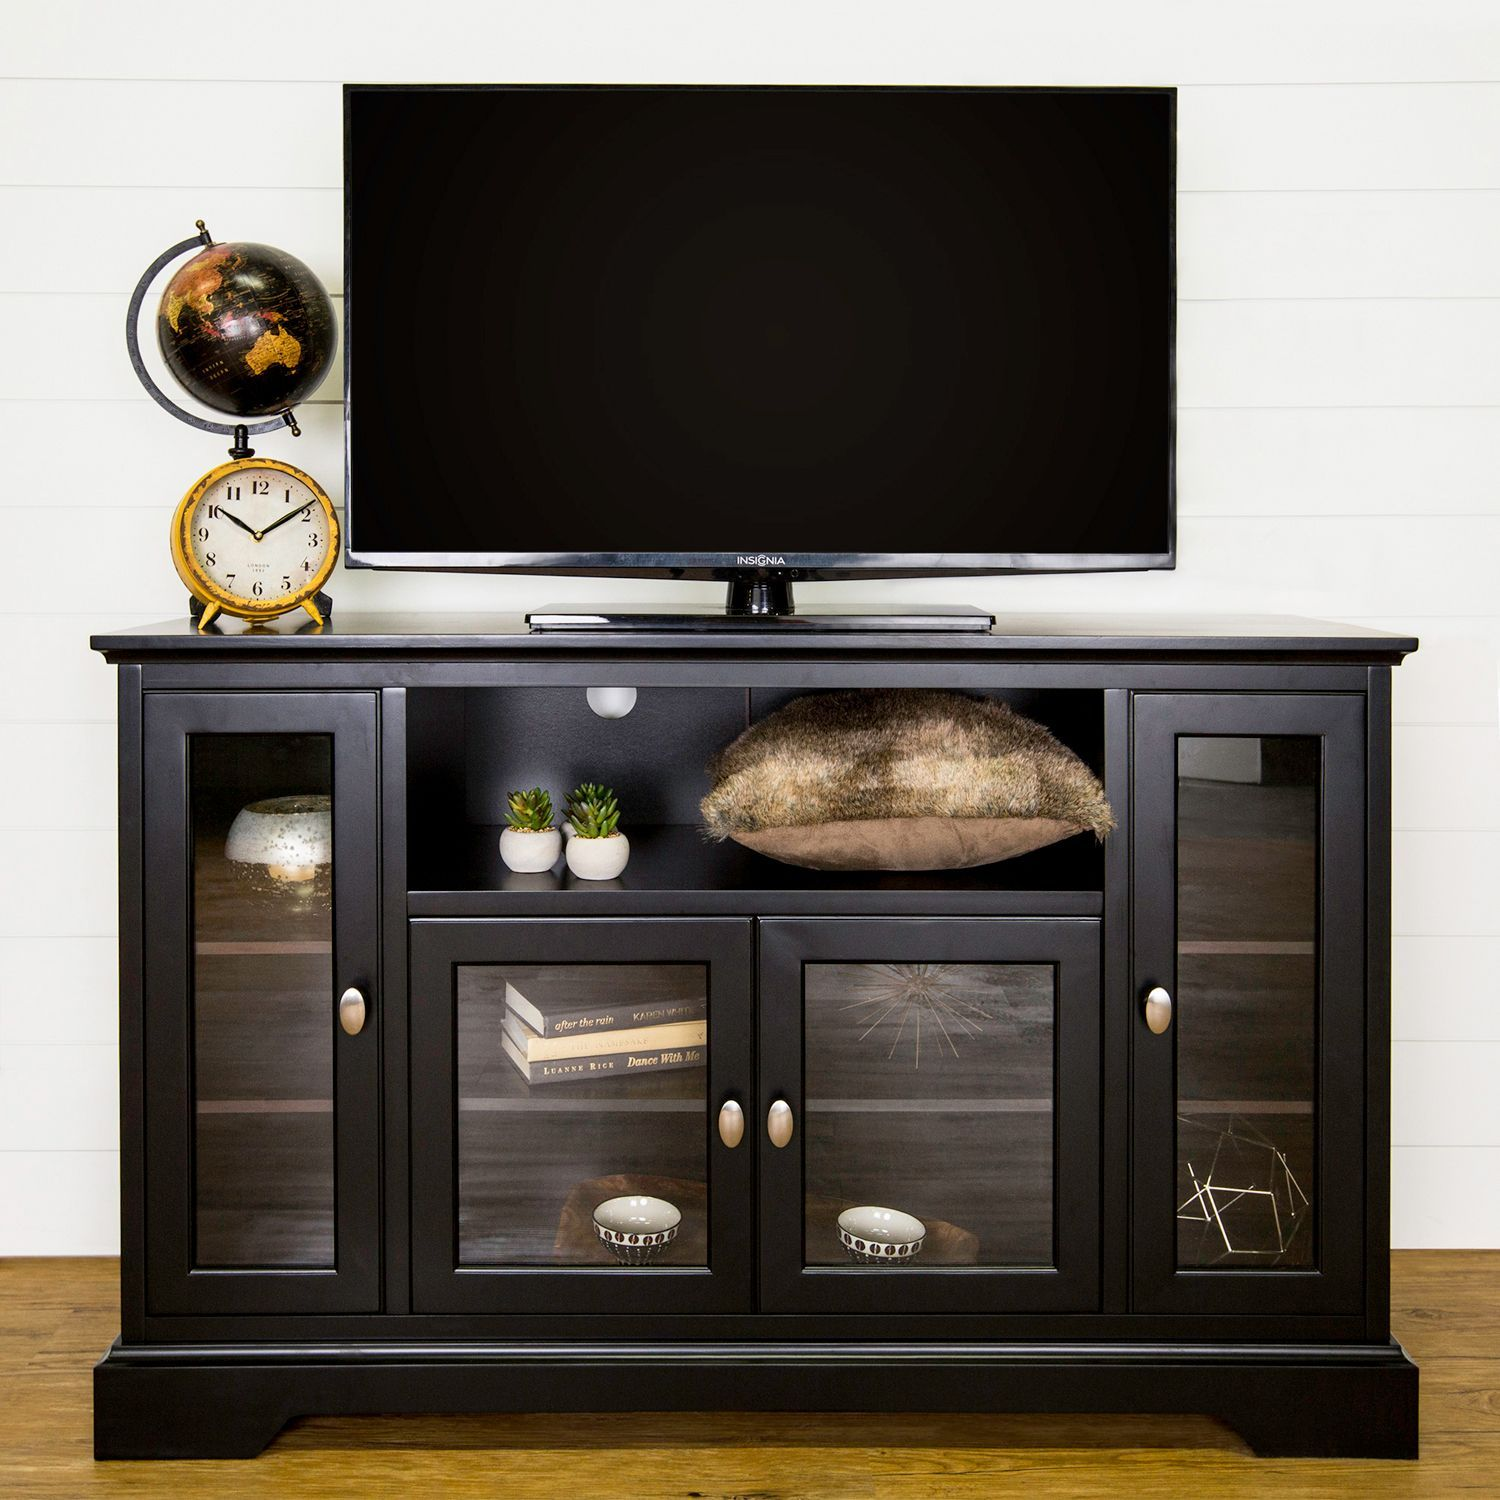 52 Black Highboy Tall Tv Stand Tall Tv Stands Tv Stand Wood Tall Corner Tv Stand